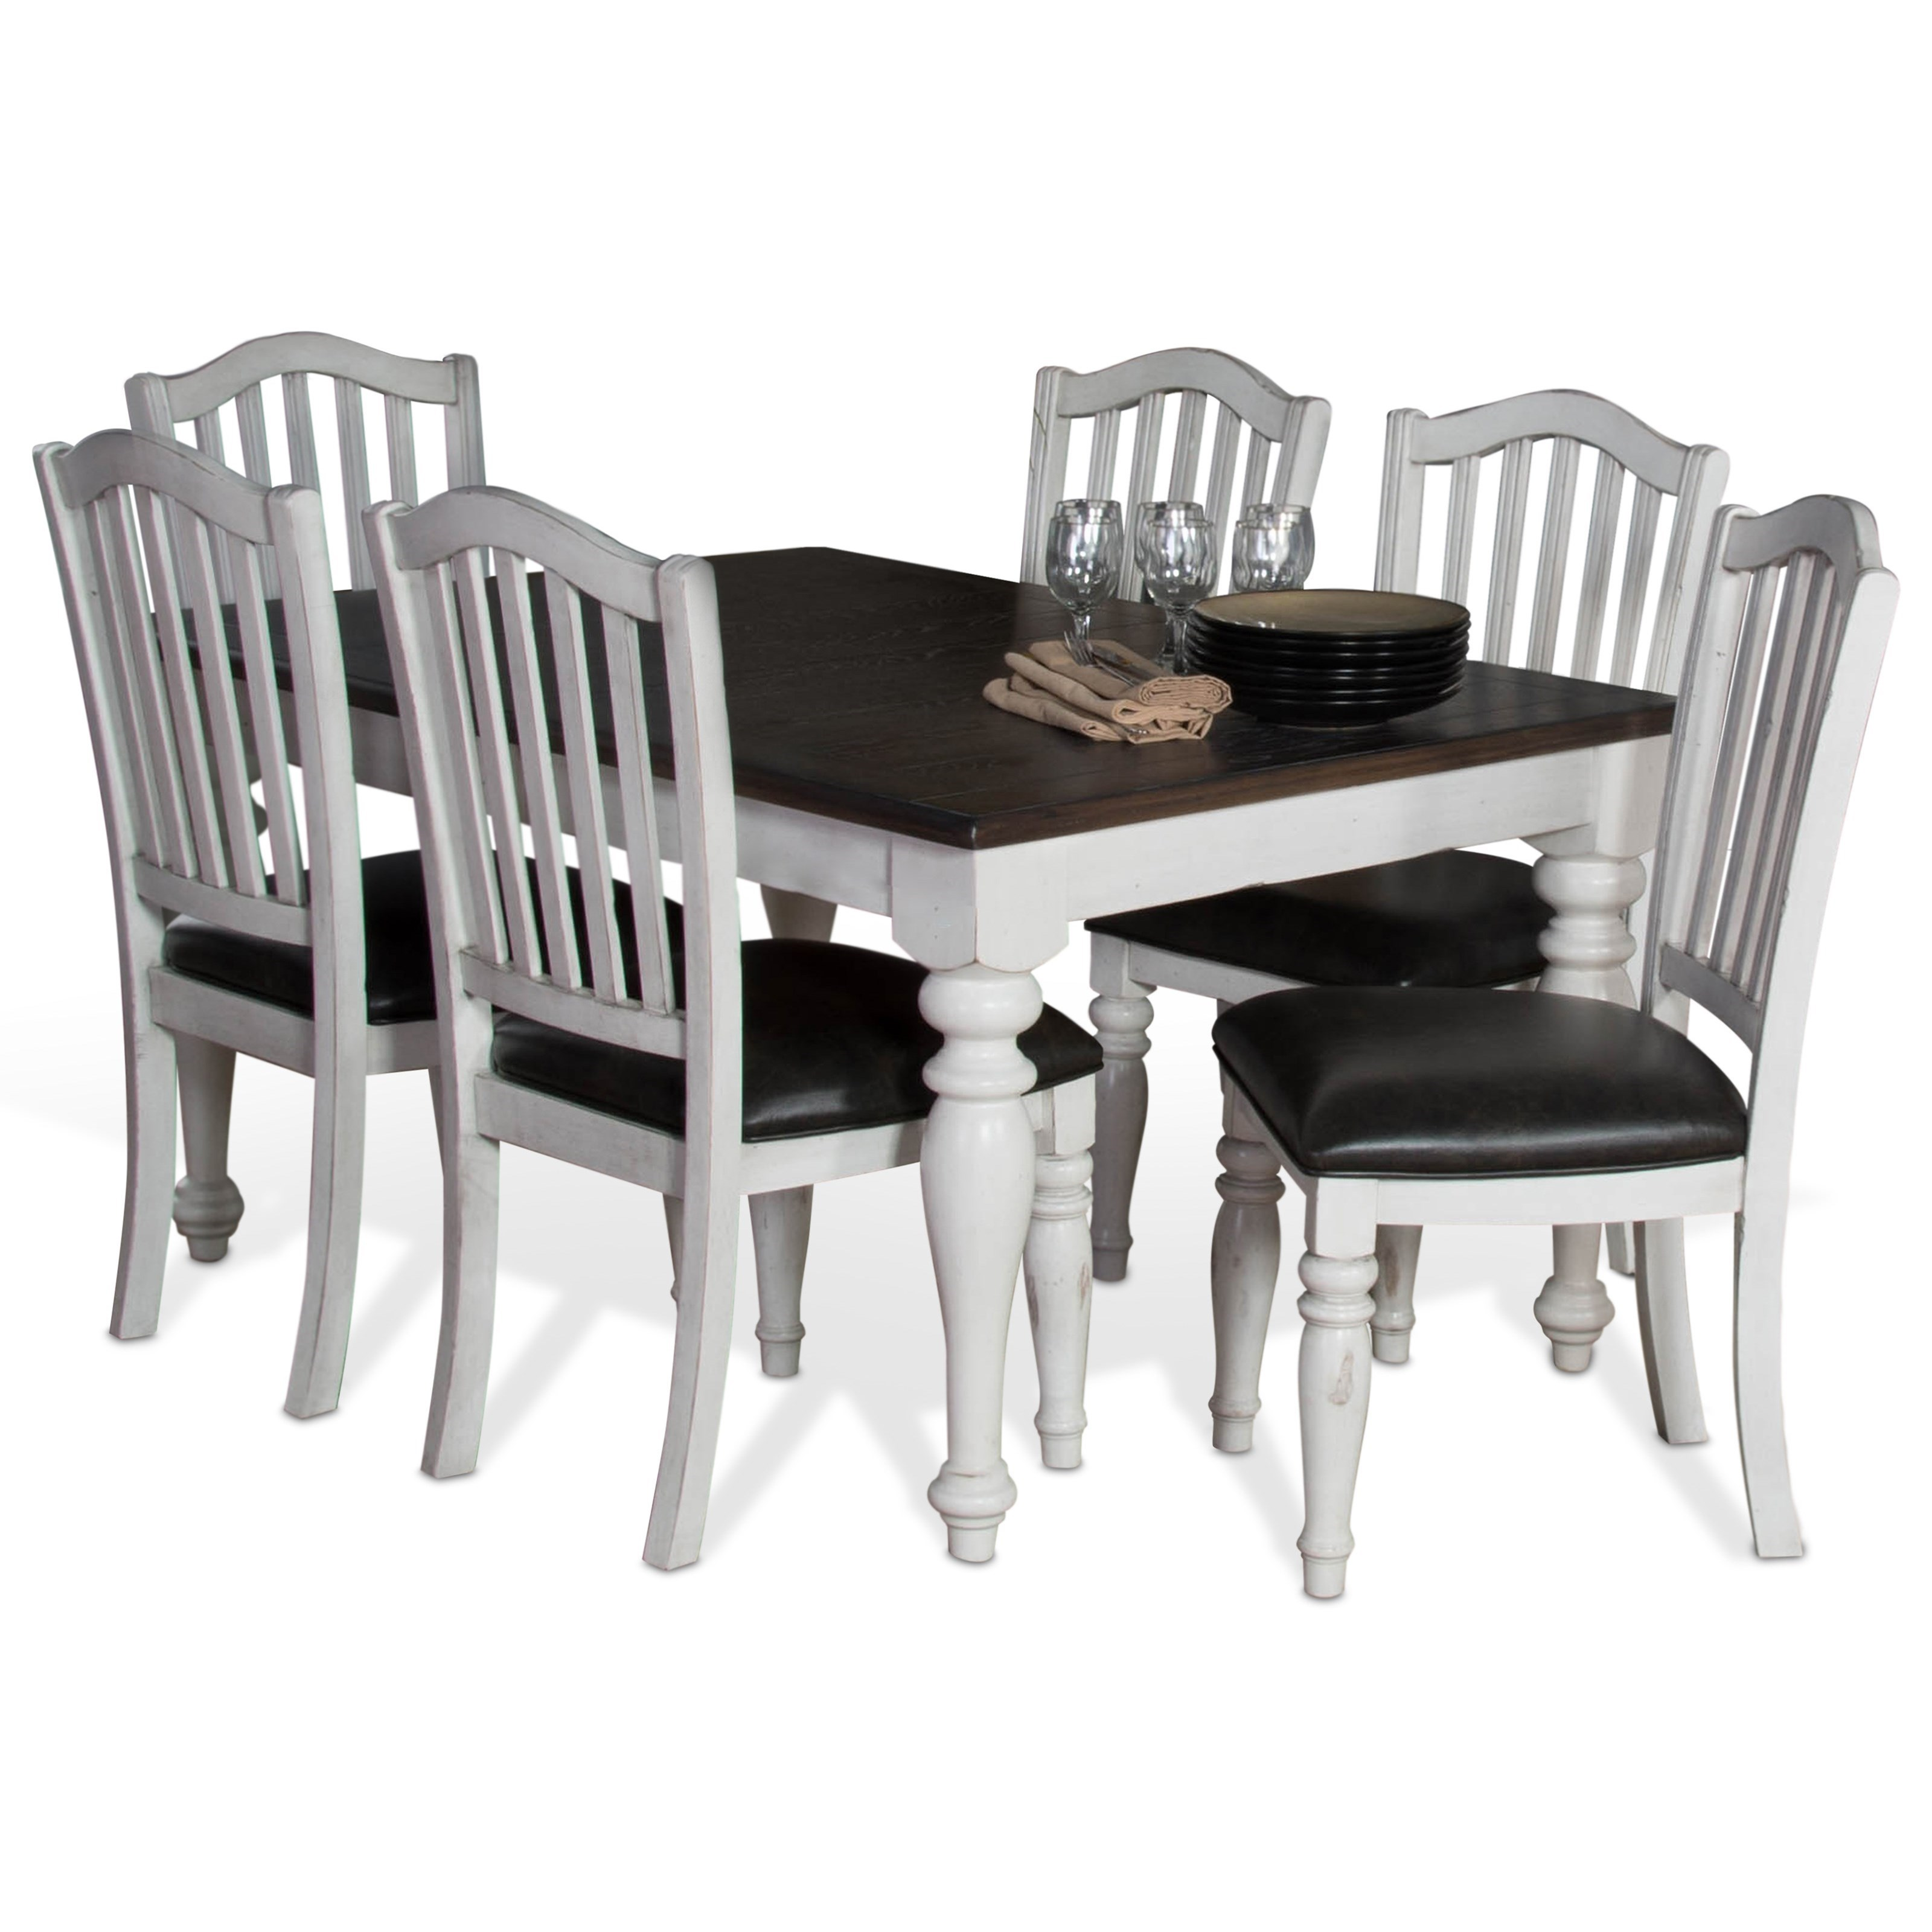 Sunny Designs Bourbon Country 7-Piece Extension Dining Table Set - Item Number: 1015FC+6x1431FC-C